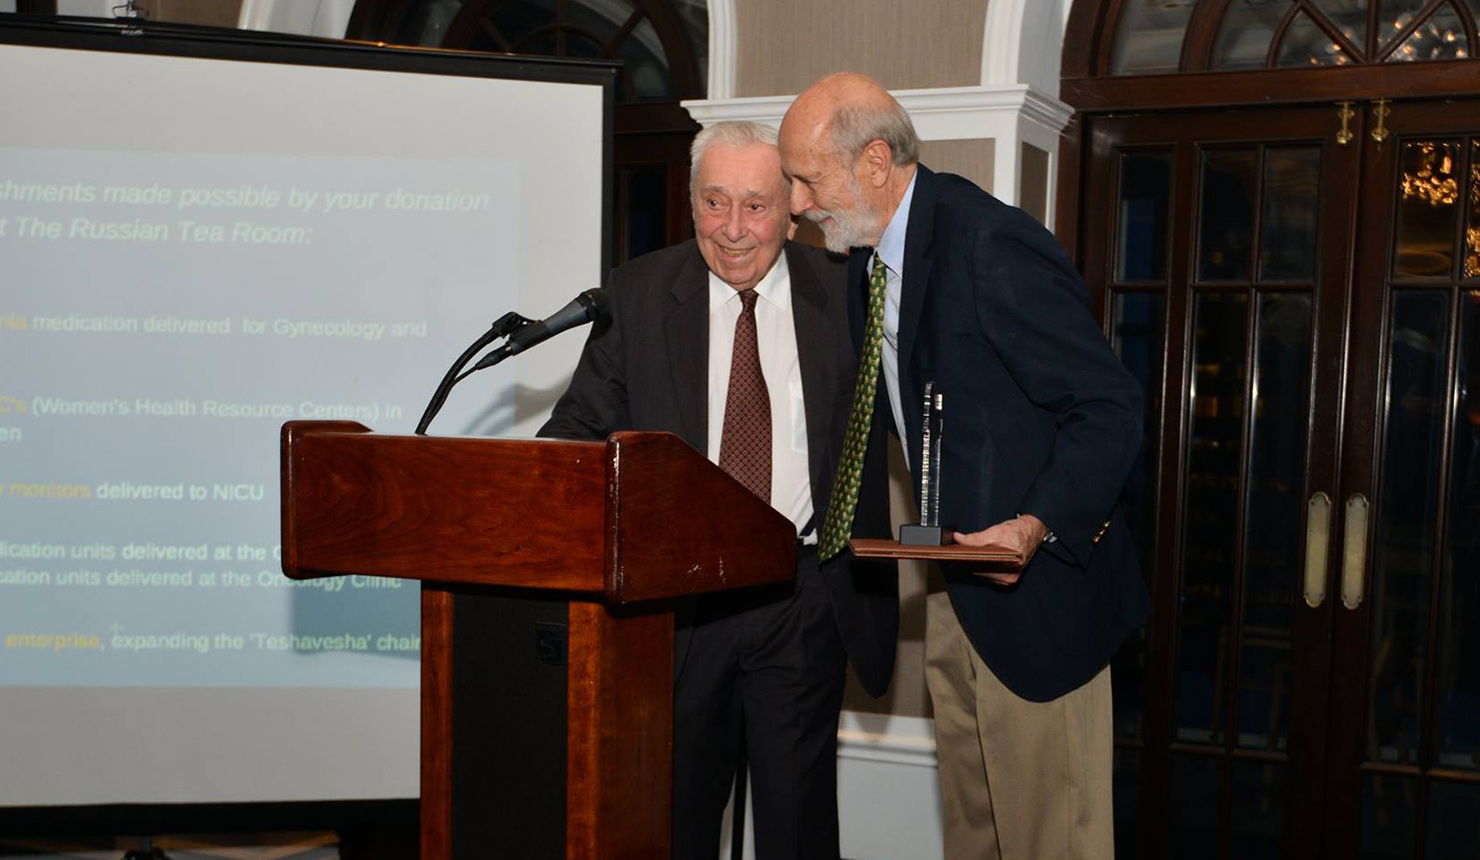 James C. Strickler, MD (left), and George A. Little, MD, FAAP (right), received their awards at an event at the Yale Club in New York City. (Photo courtesy of Action for Mothers and Children)